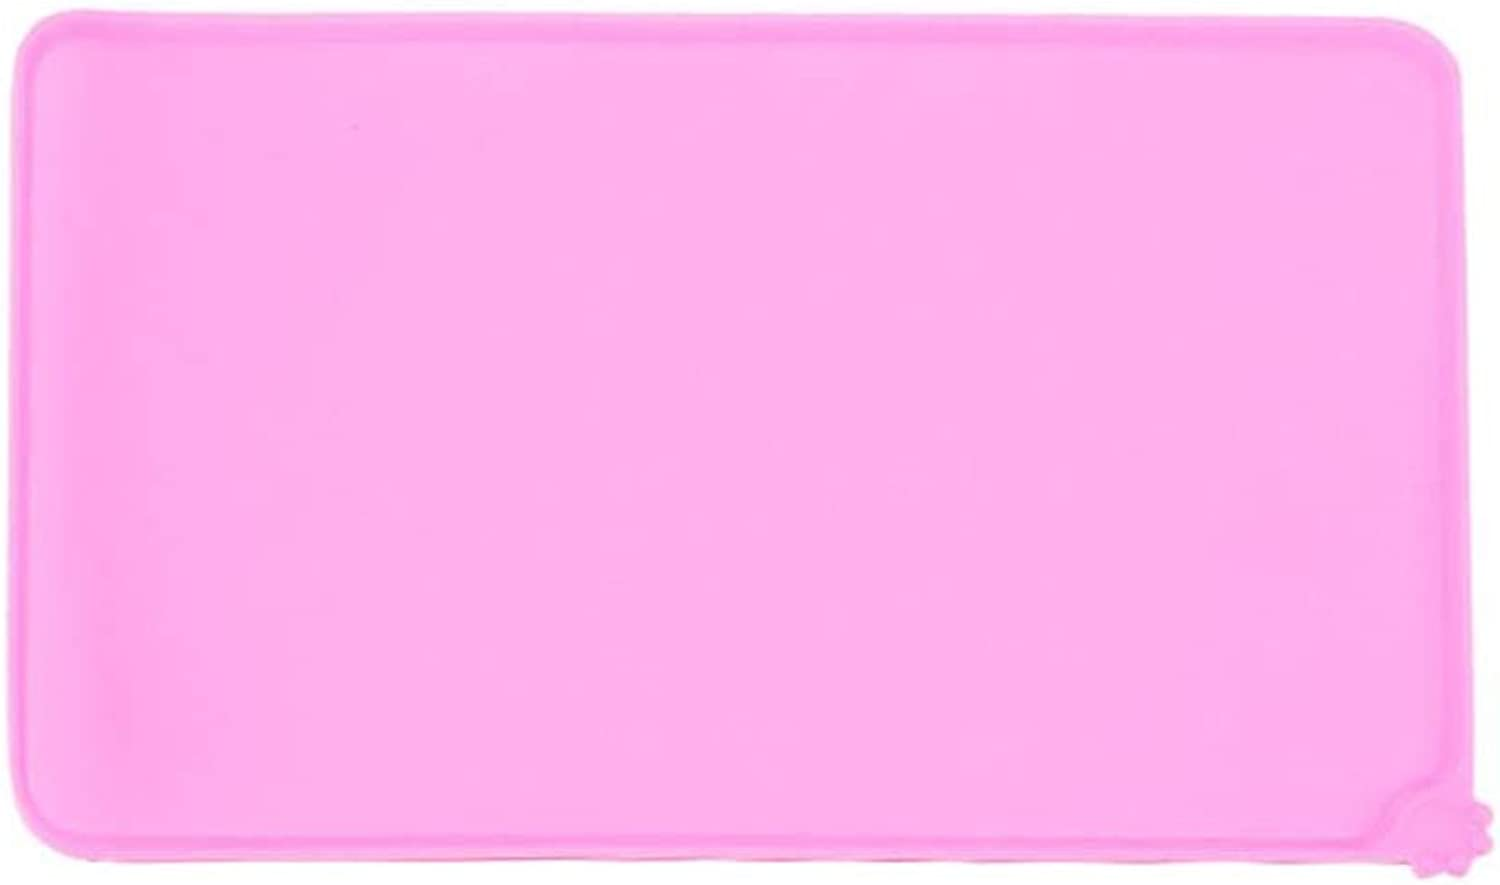 LIHUA Pet Silicone Antioverflow Placemat Antiskid Moistureproof Waterproof Easy To Clean Cat Dog Mat Dog Bowl Pad Biteresistant Supplies (color   PINK, Size   47  30cm)